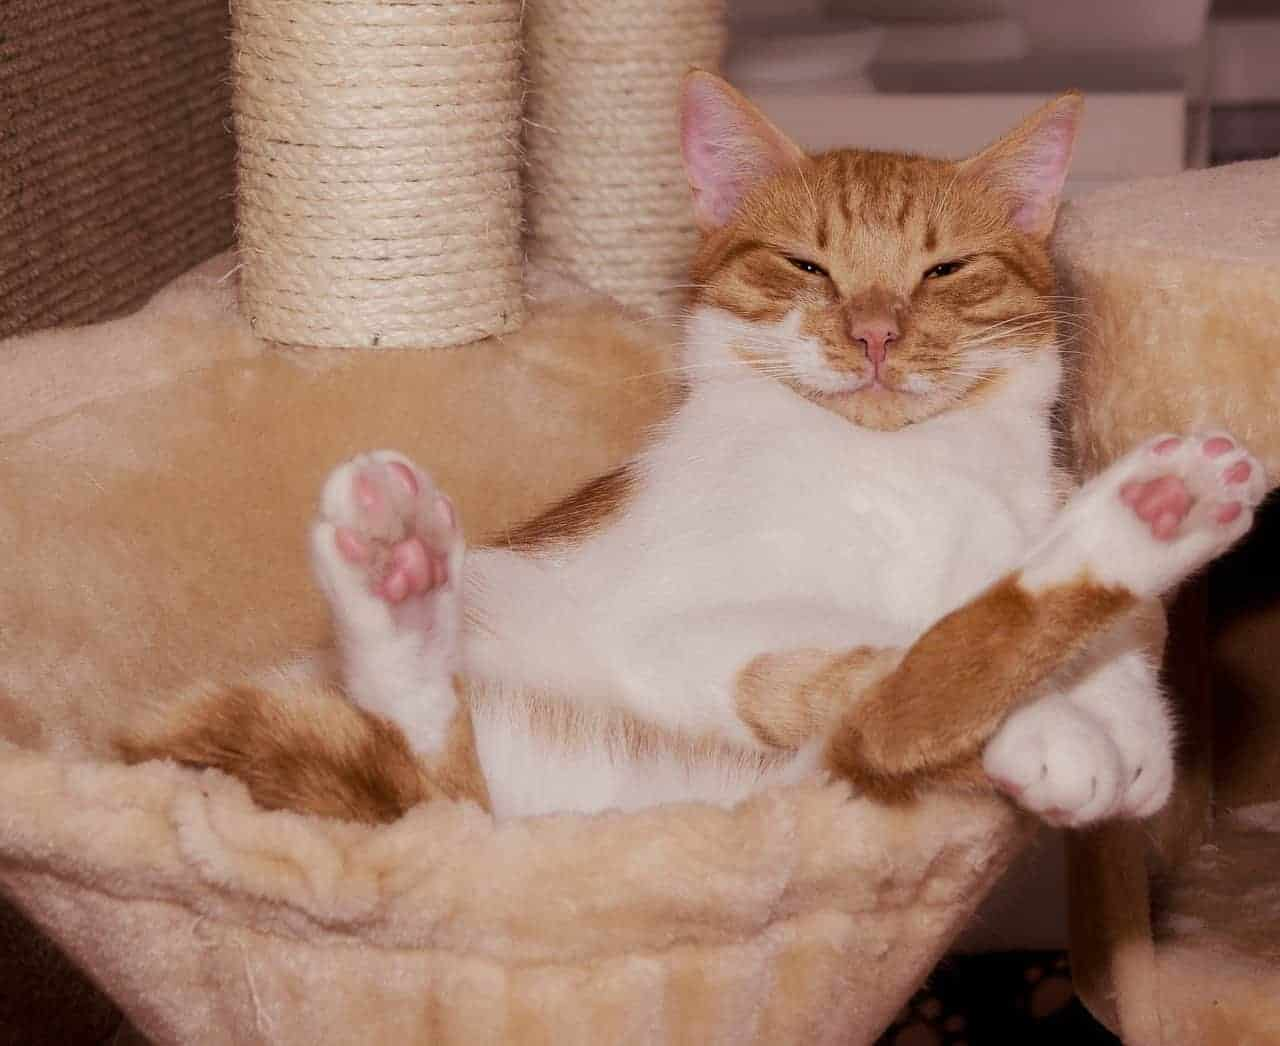 Should You Trim the Hair On A Cat's Paws?